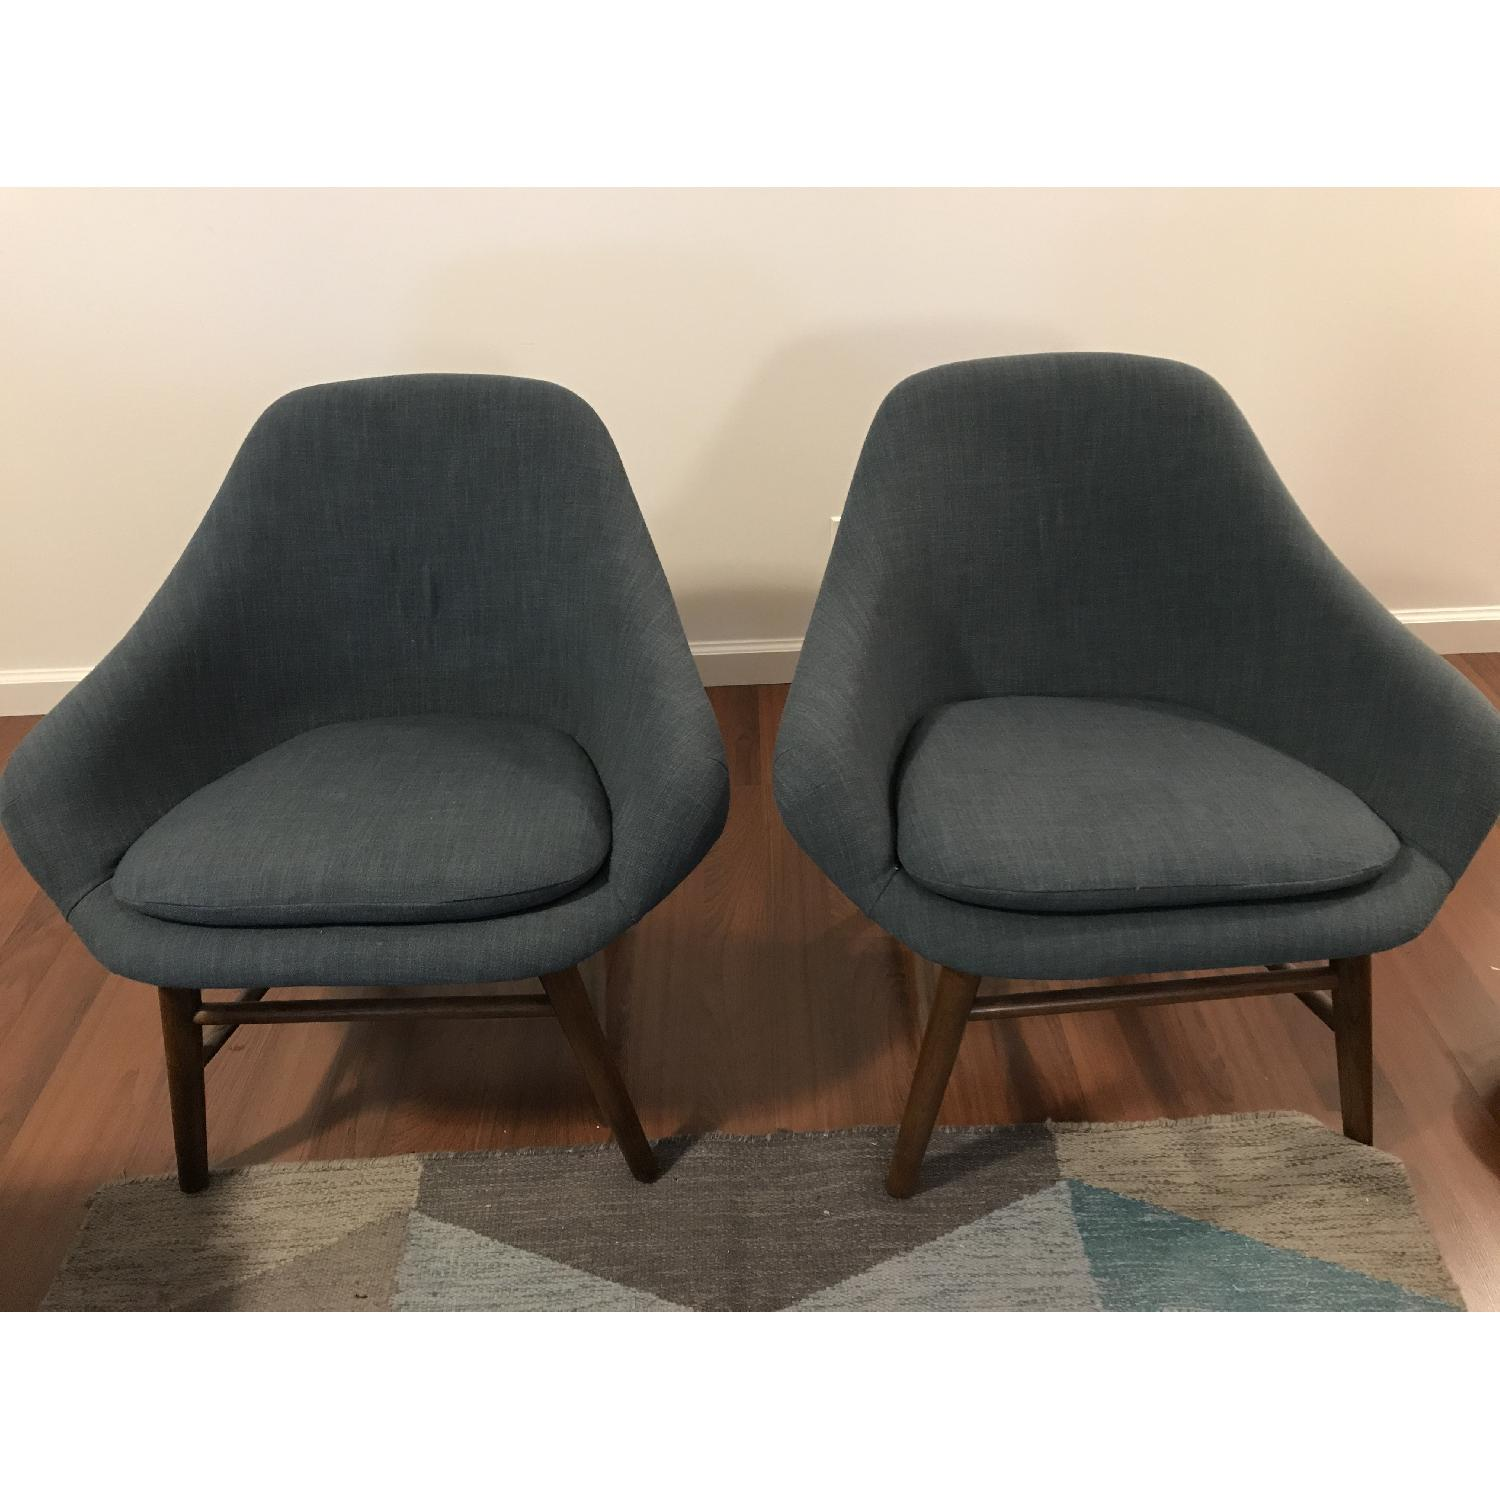 West Elm Mylo Chairs in Teal-0